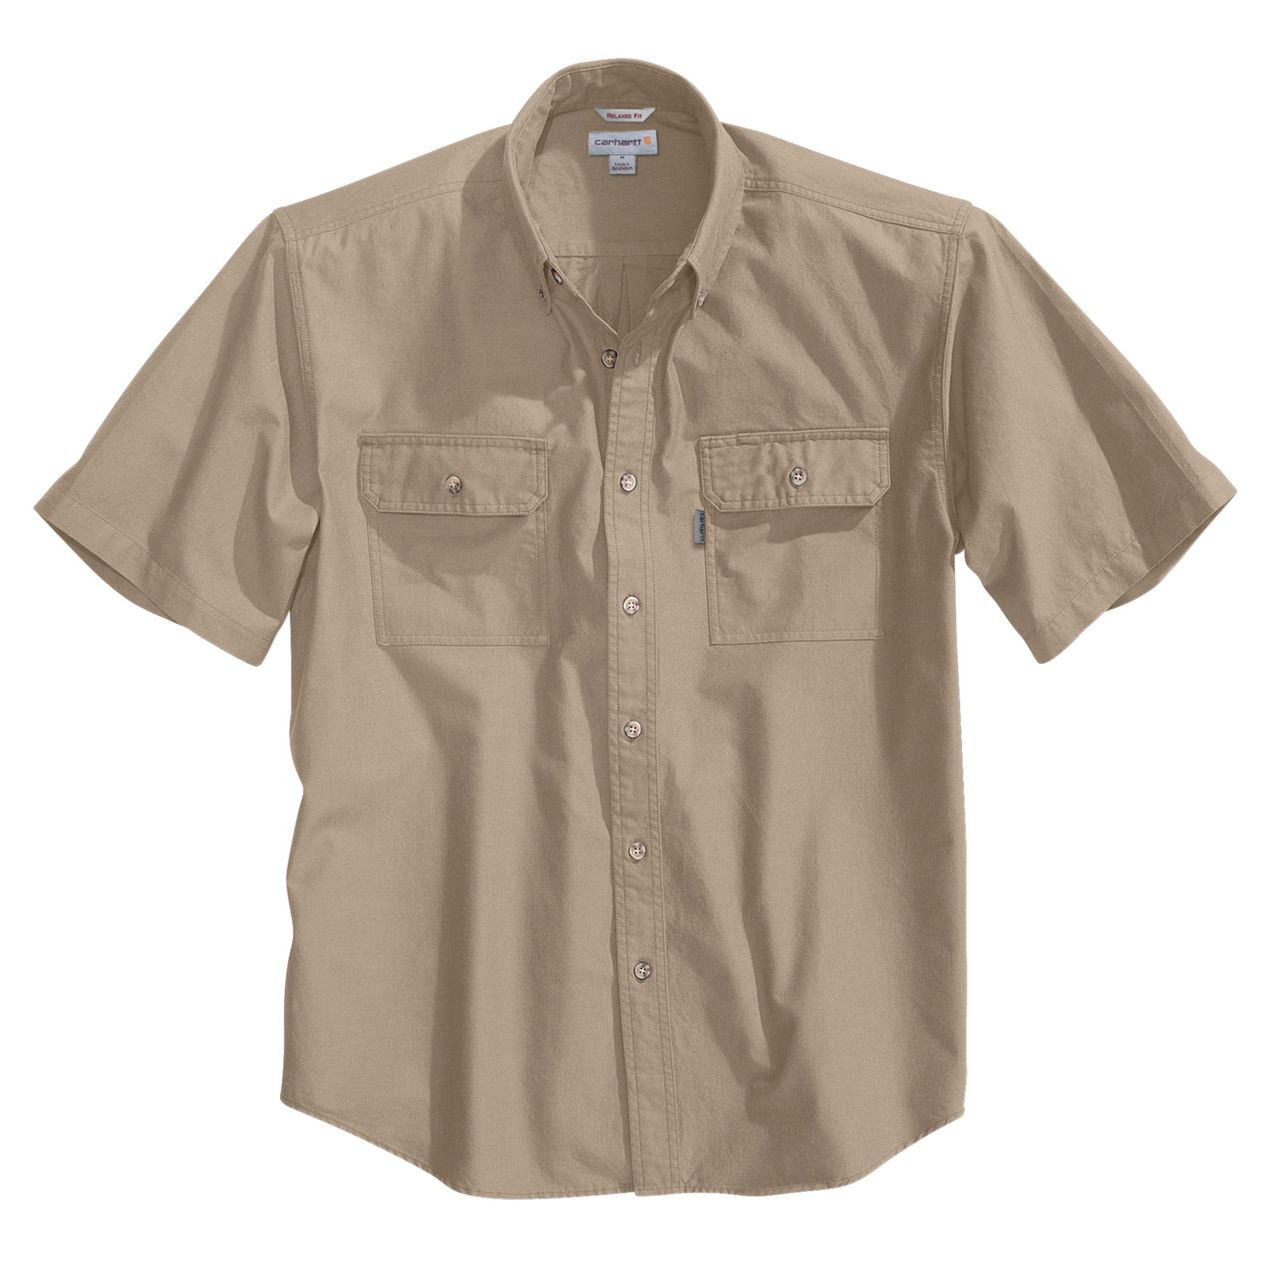 4fdbecffc10 Fort SS Shirt Light-Weight Chambray - The Brown Duck